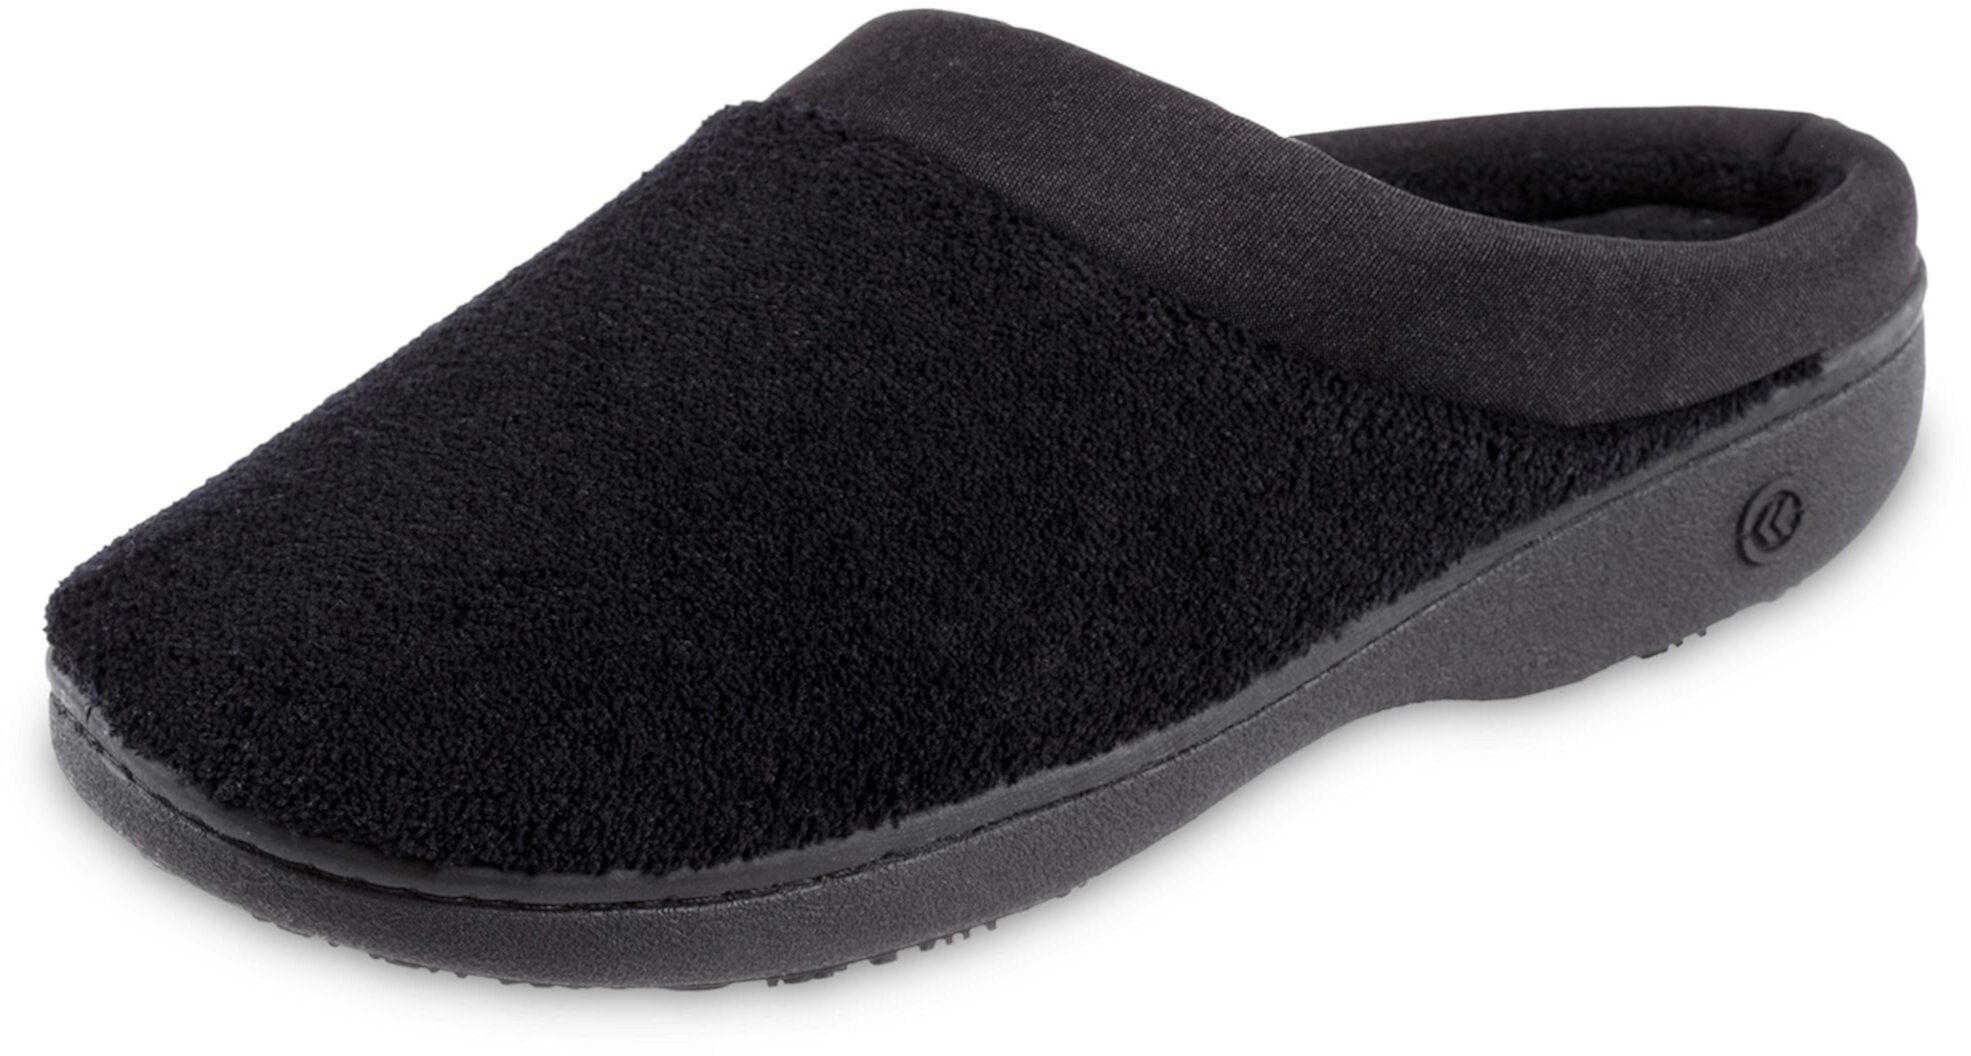 Terry and Satin Slip on Cushioned Slipper With Memory Foam for Indoor/Outdoor Comfort ISOTONER